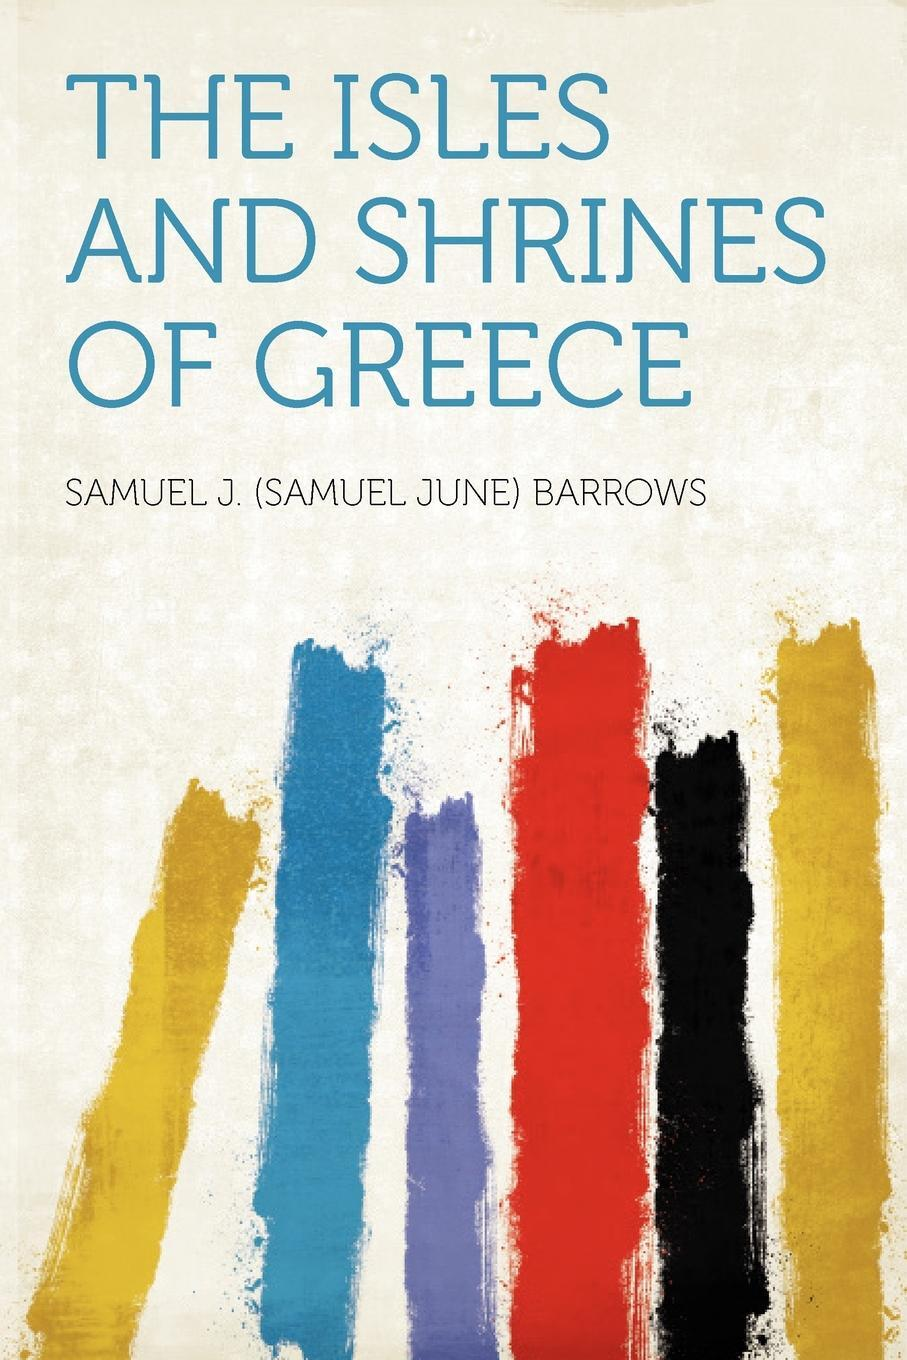 The Isles and Shrines of Greece.